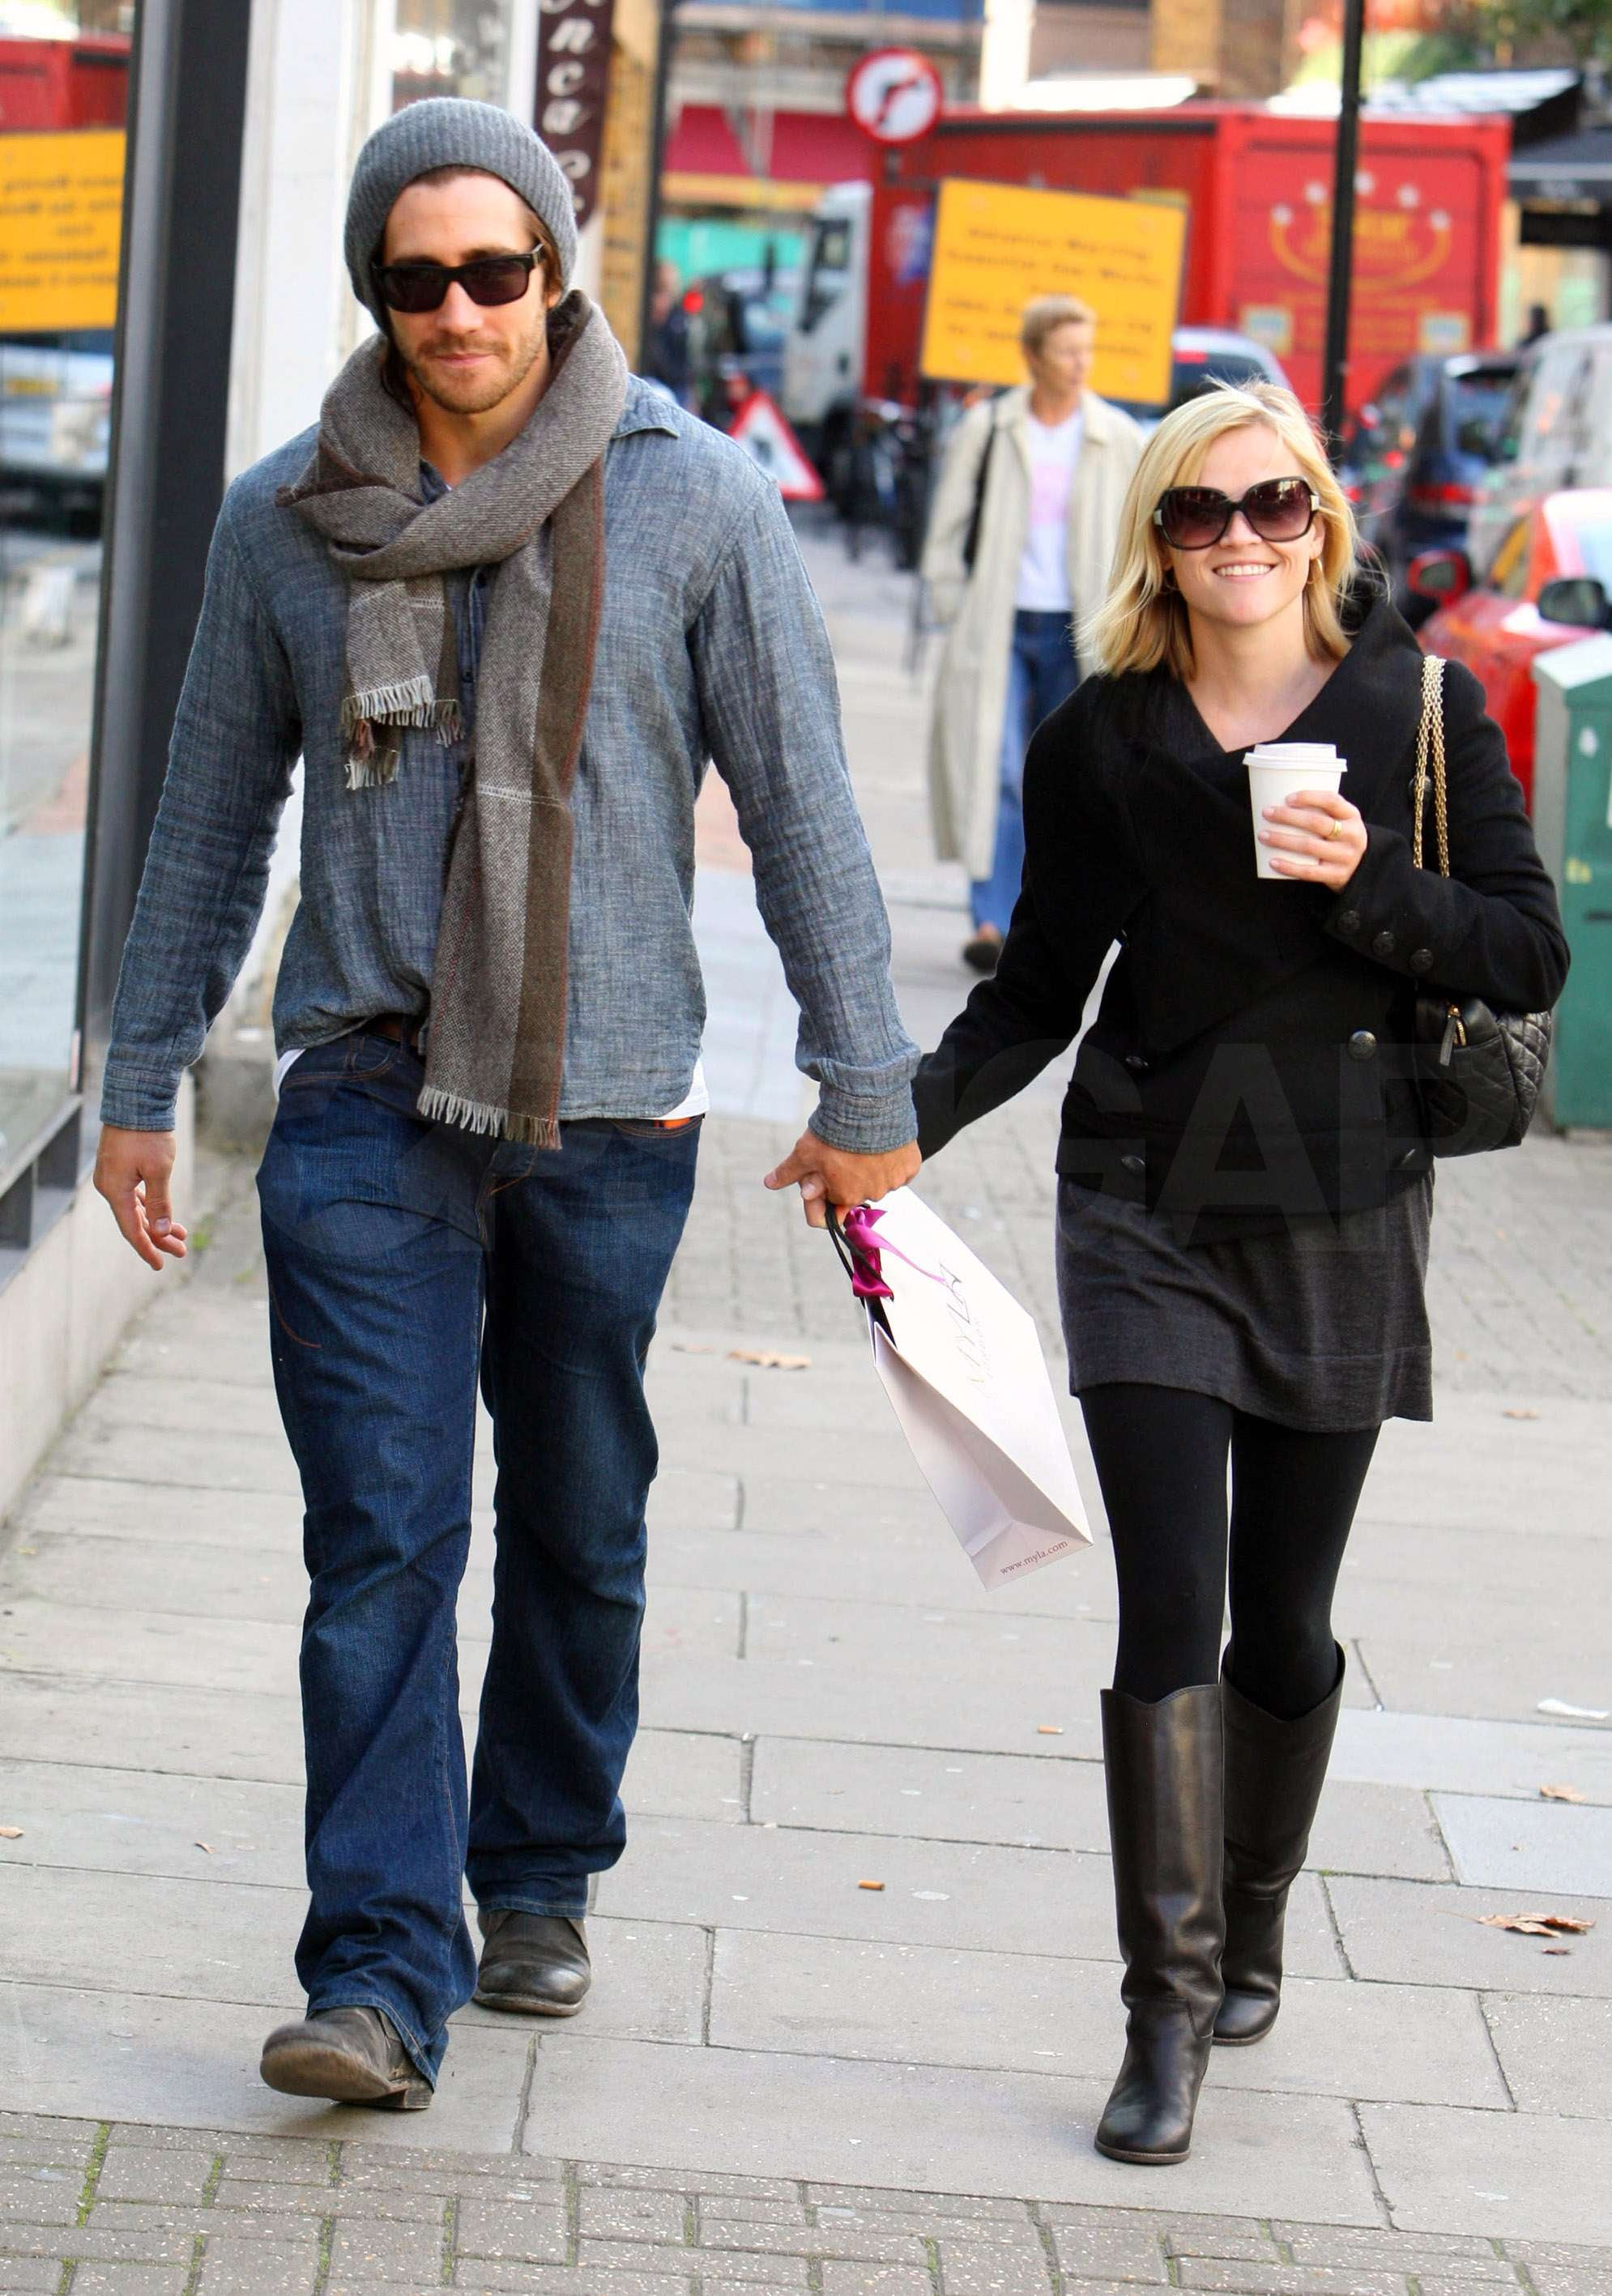 photos of reese witherspoon and jake gyllenhaal in london